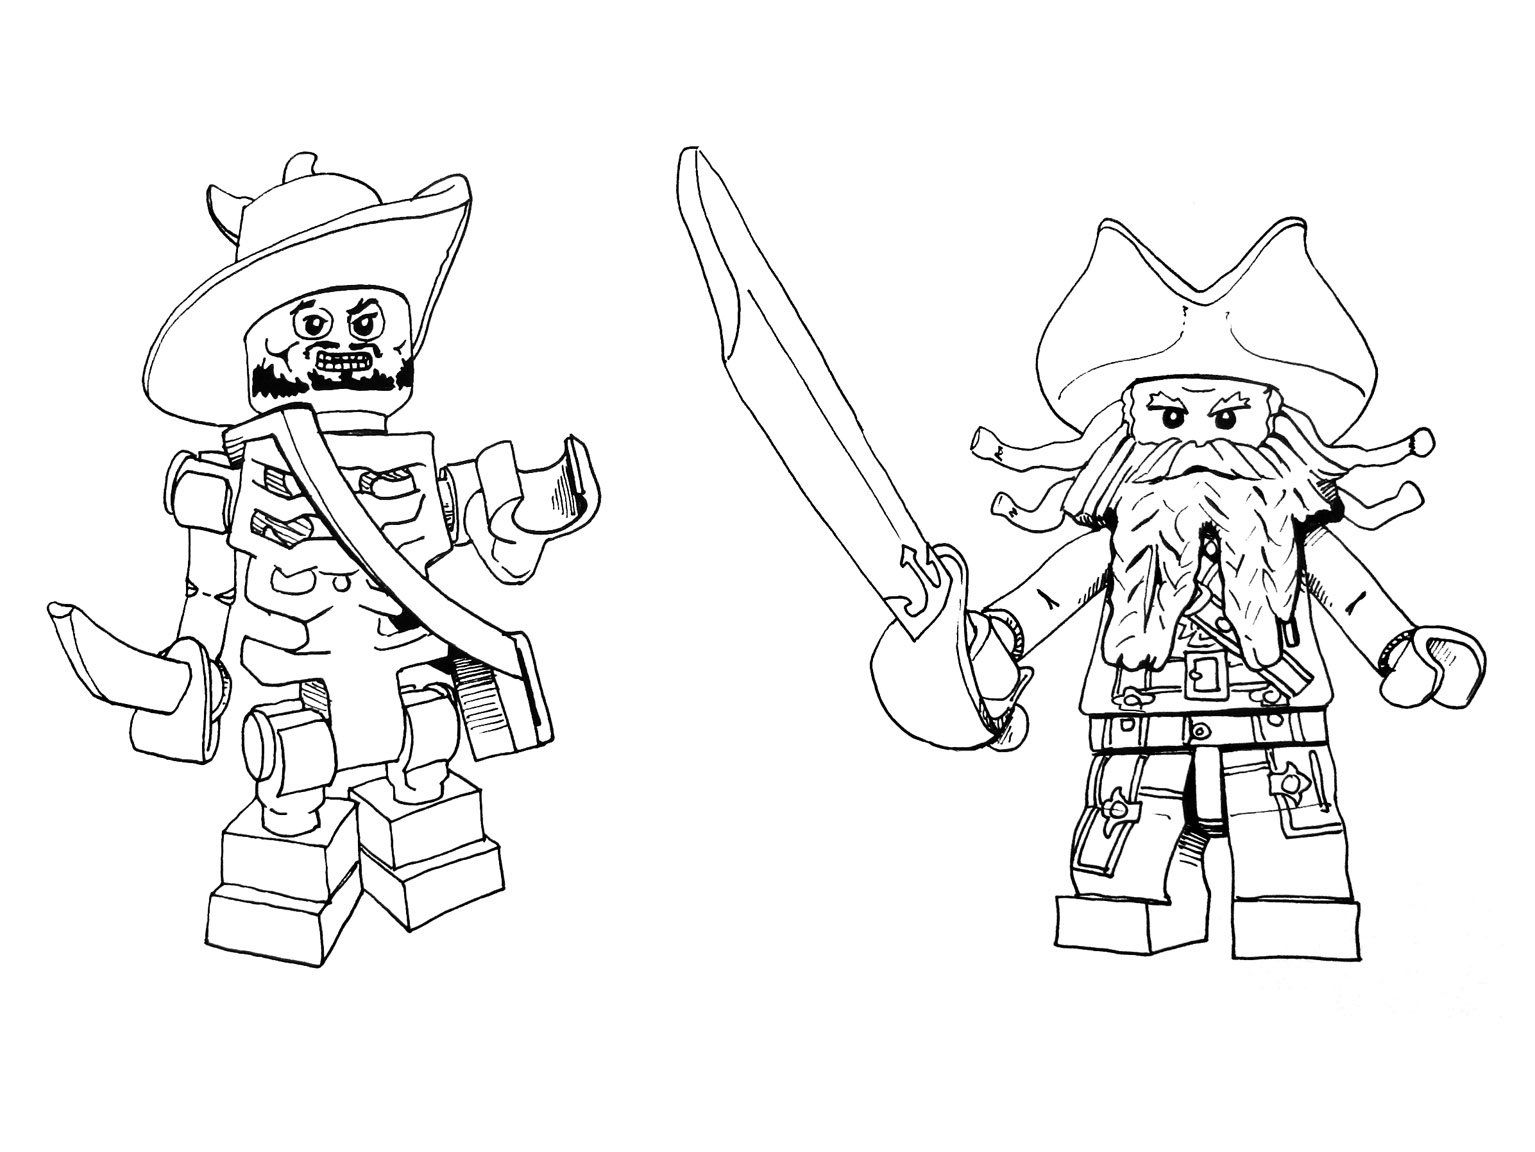 pirates of the caribbean coloring pages # 44